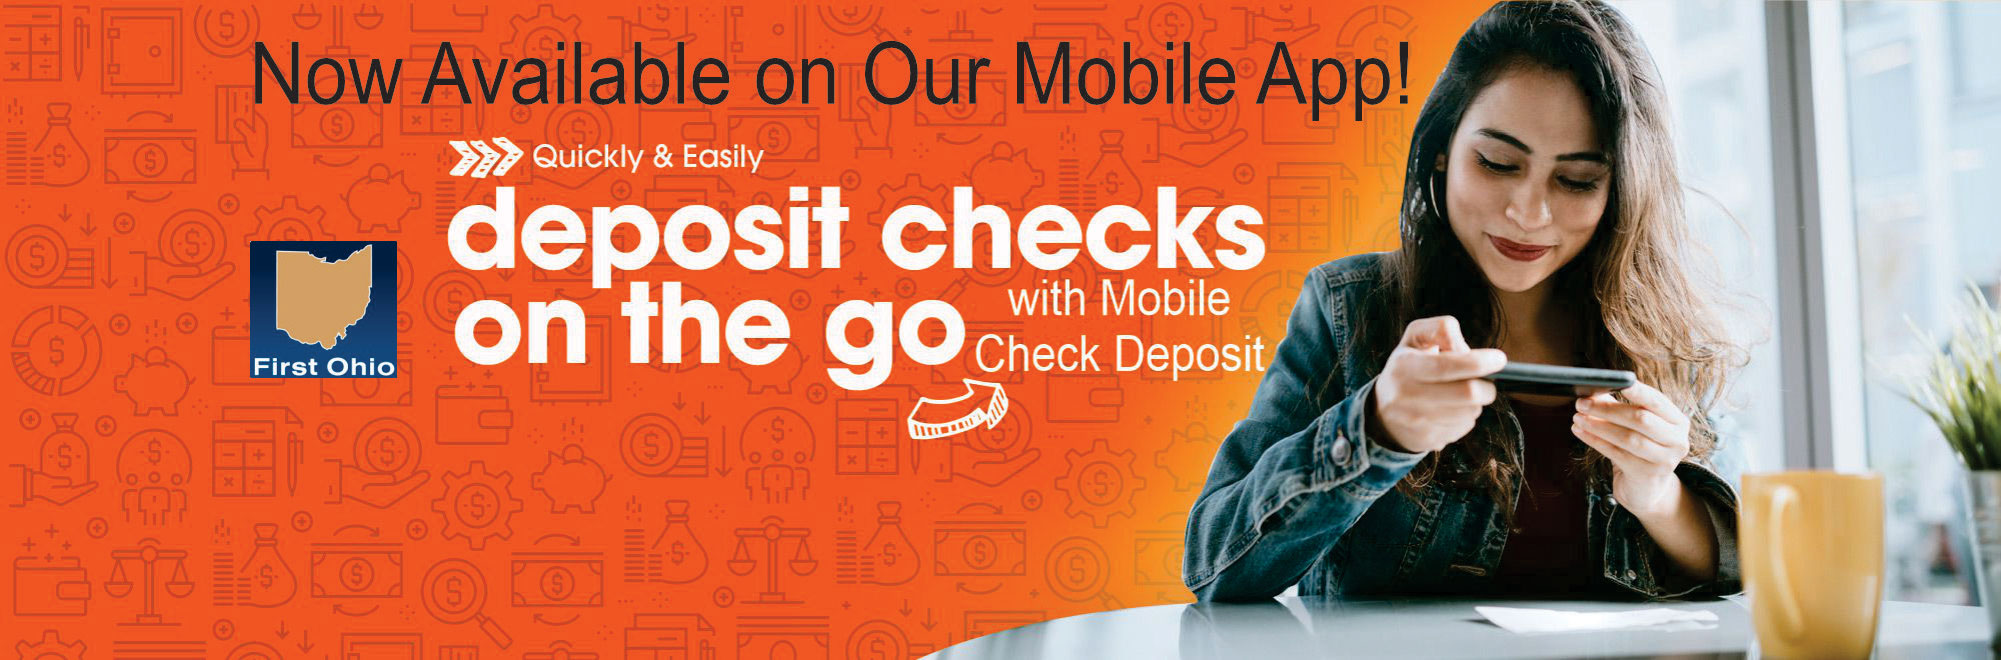 Deposit checks on the go with mobile check deposit now available on our mobile app